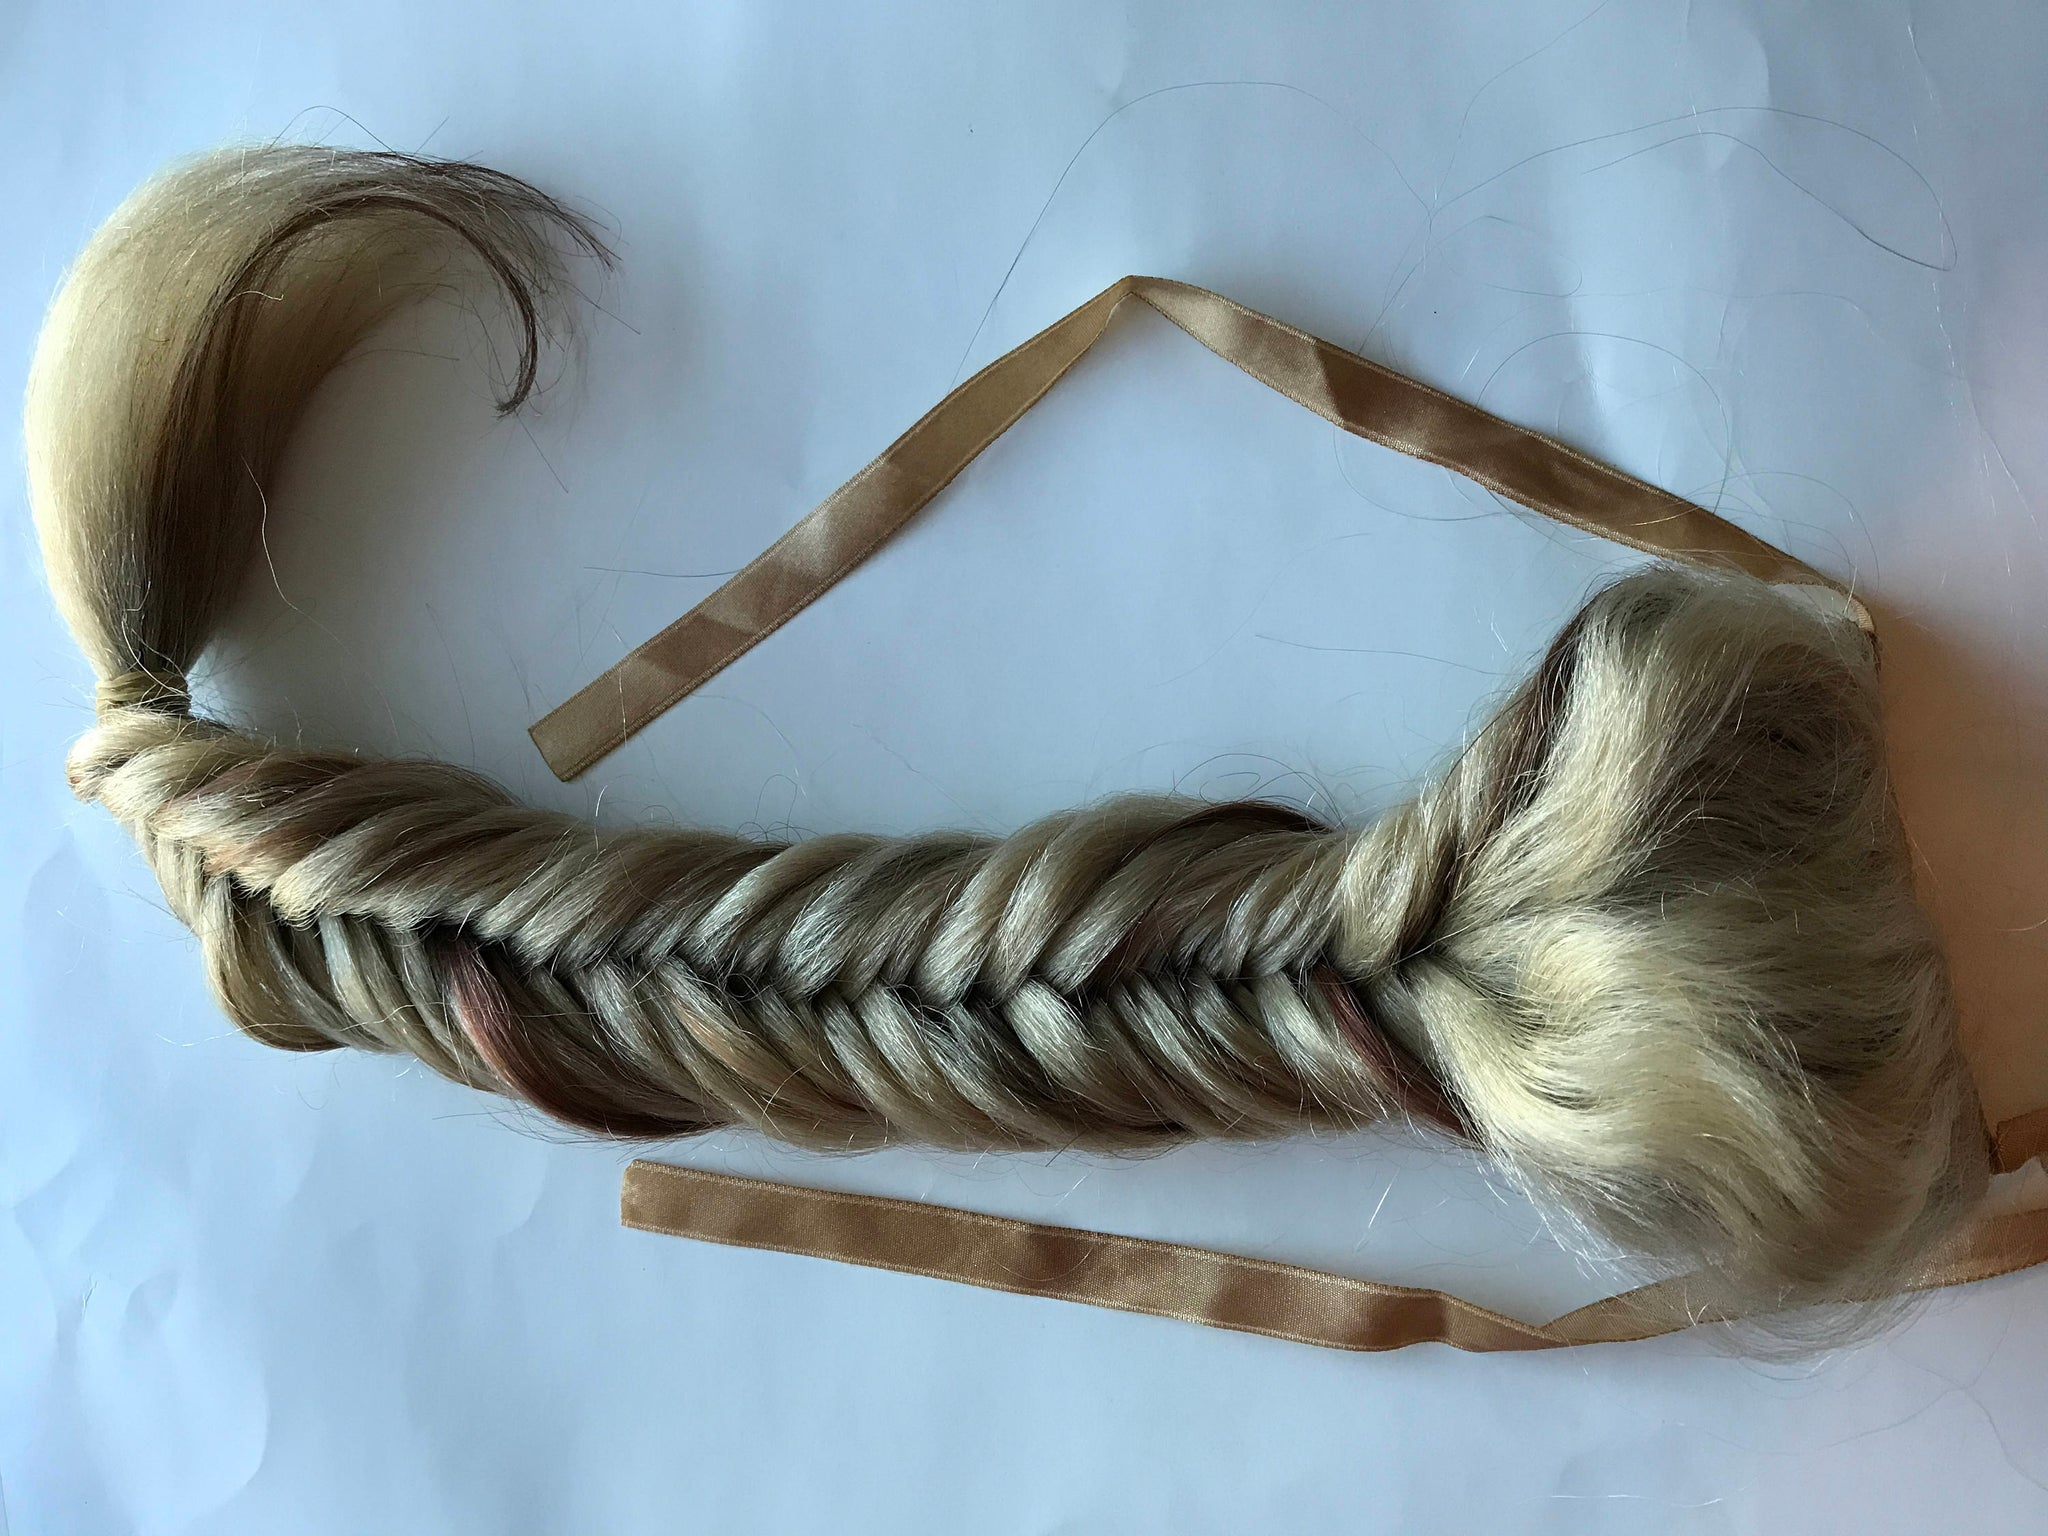 Human Hair Clip in Fish Tail Braid Extension Fishtail Brown Blonde Auburn Black Pony Fall 18 in